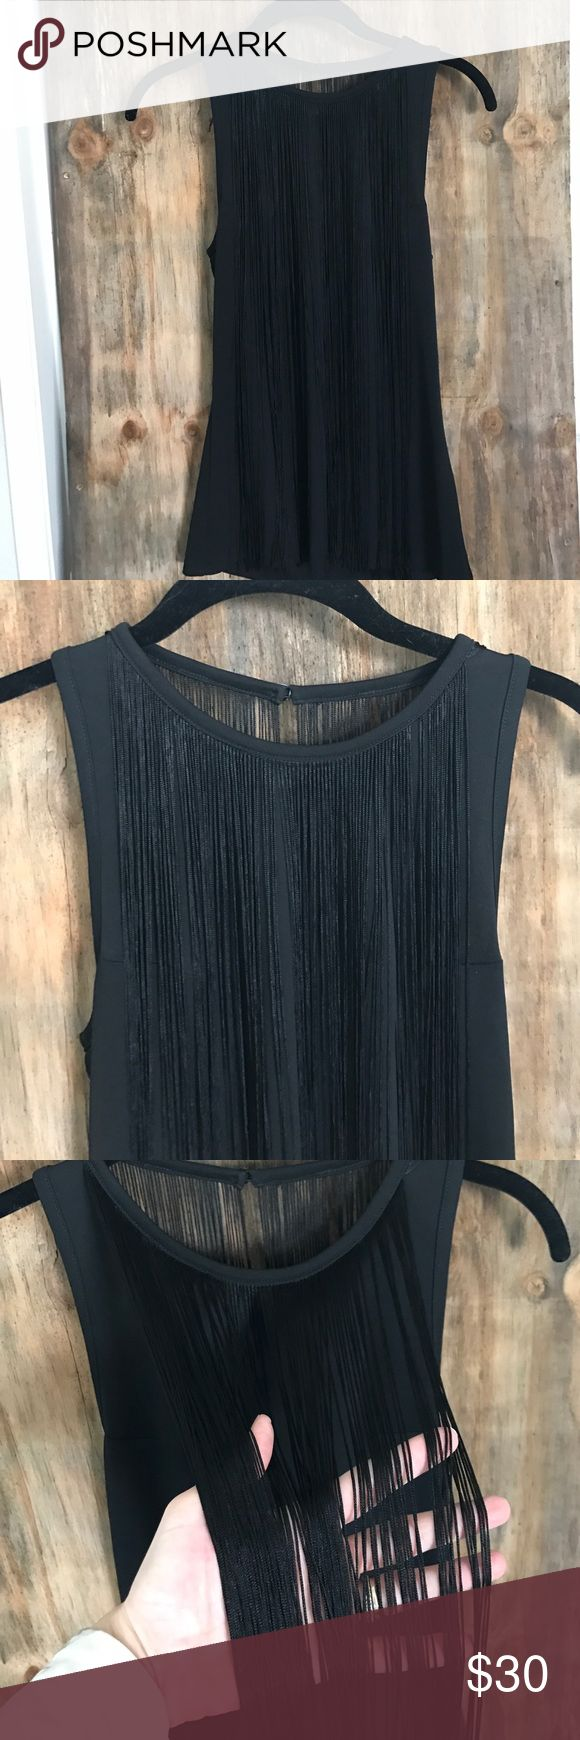 Sam Edelman front and back fringe blouse NWOT This is just too good! The fringe adds sex and glamour to an otherwise basic black tank. 100% Polyester for a soft, silky feel. Sam Edelman Tops